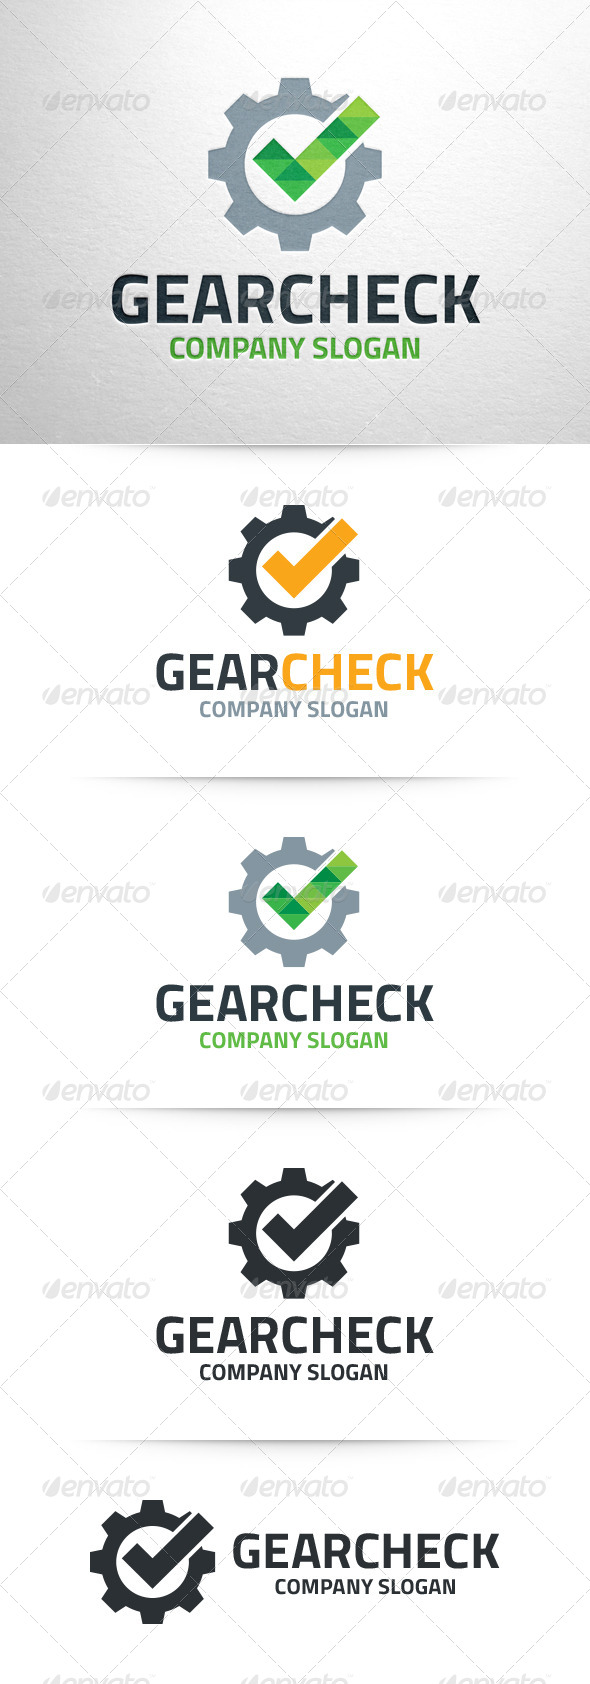 GraphicRiver Gear Check Logo Temlate 6941145